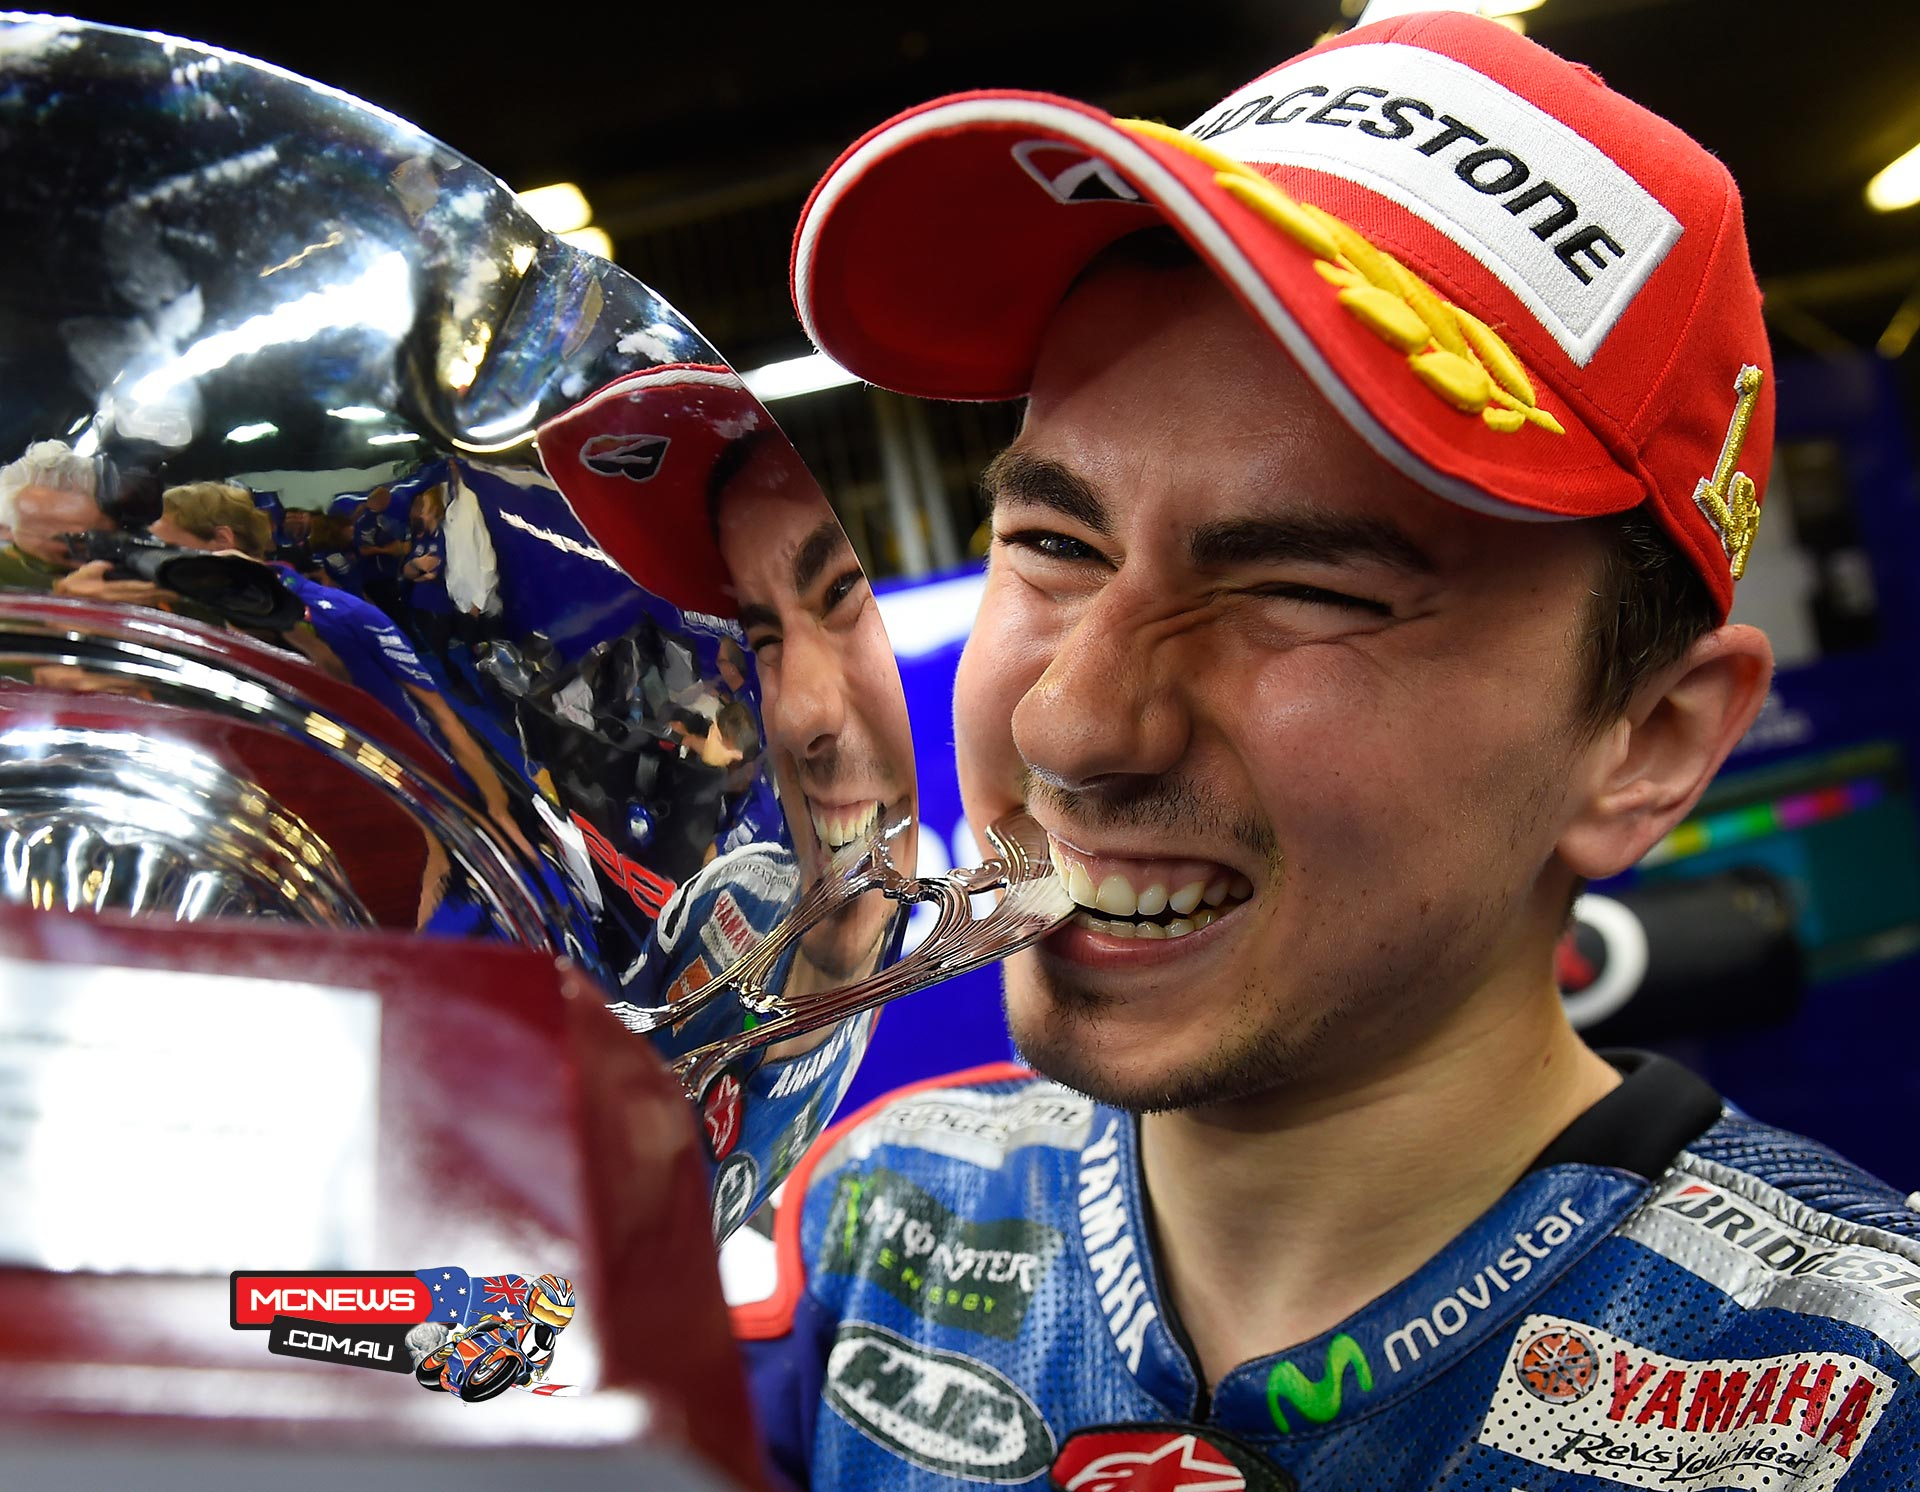 Movistar Yamaha's Lorenzo led from start to finish for the fourth race in succession to close the gap on his teammate Rossi in the standings to just one point.